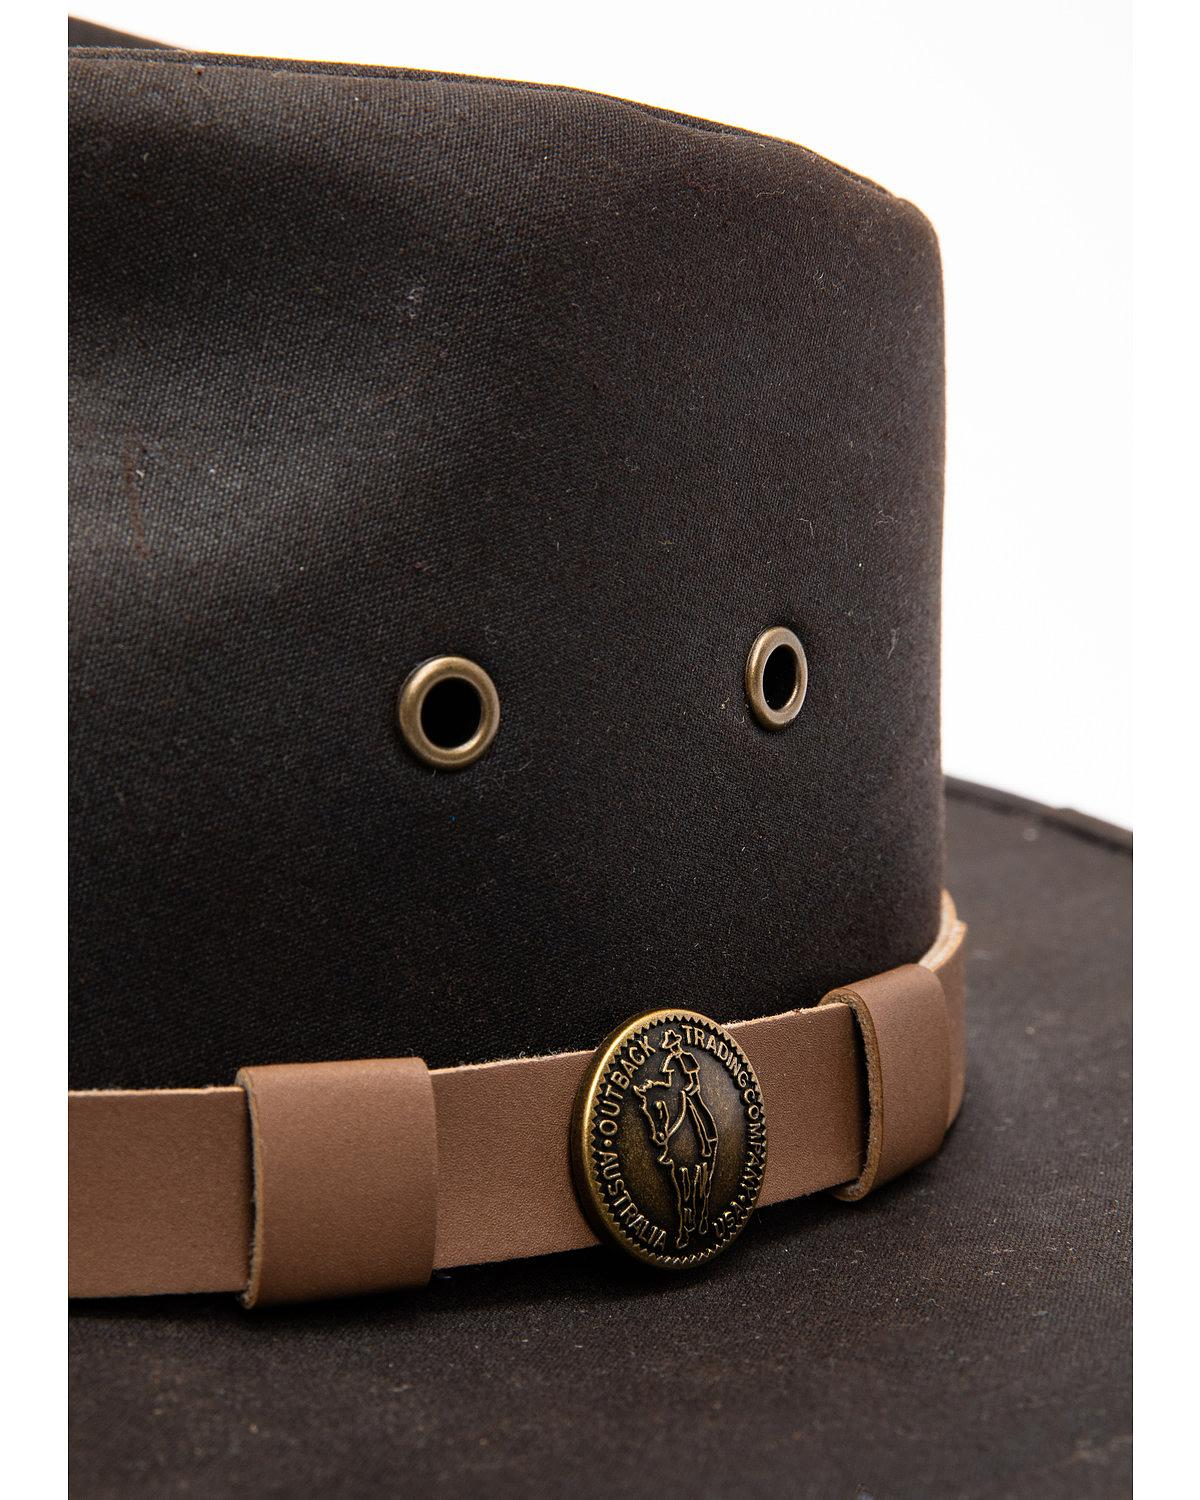 1480 BROWN Outback Trading Co Kodiak Oilskin Hat